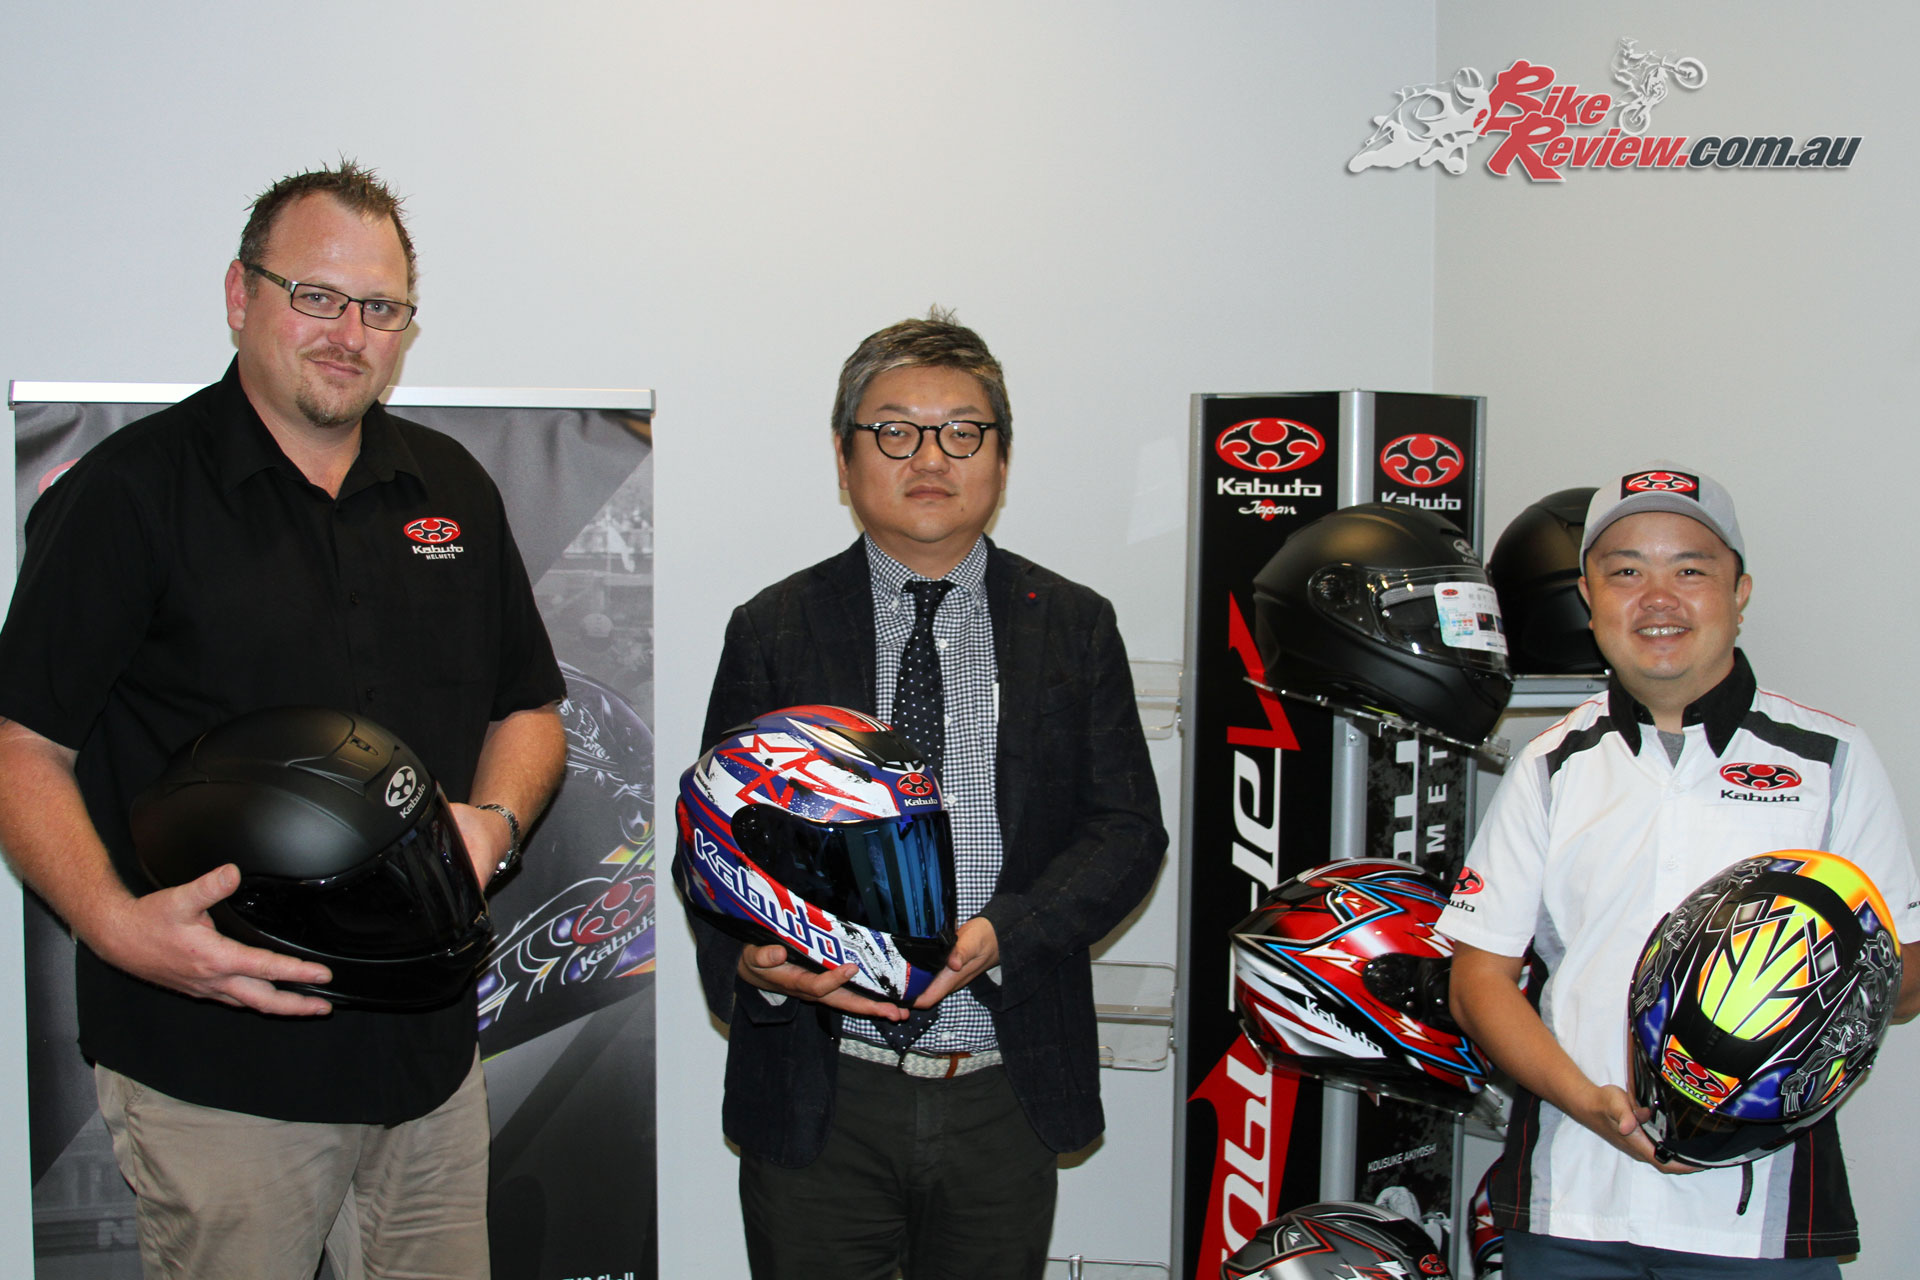 Left to Right: Moto National's Chris Lynis, Kabuto Executive Director Hiroki Kimura and Overseas Operations Manager Ryohei Wada with the new Aeroblade-5